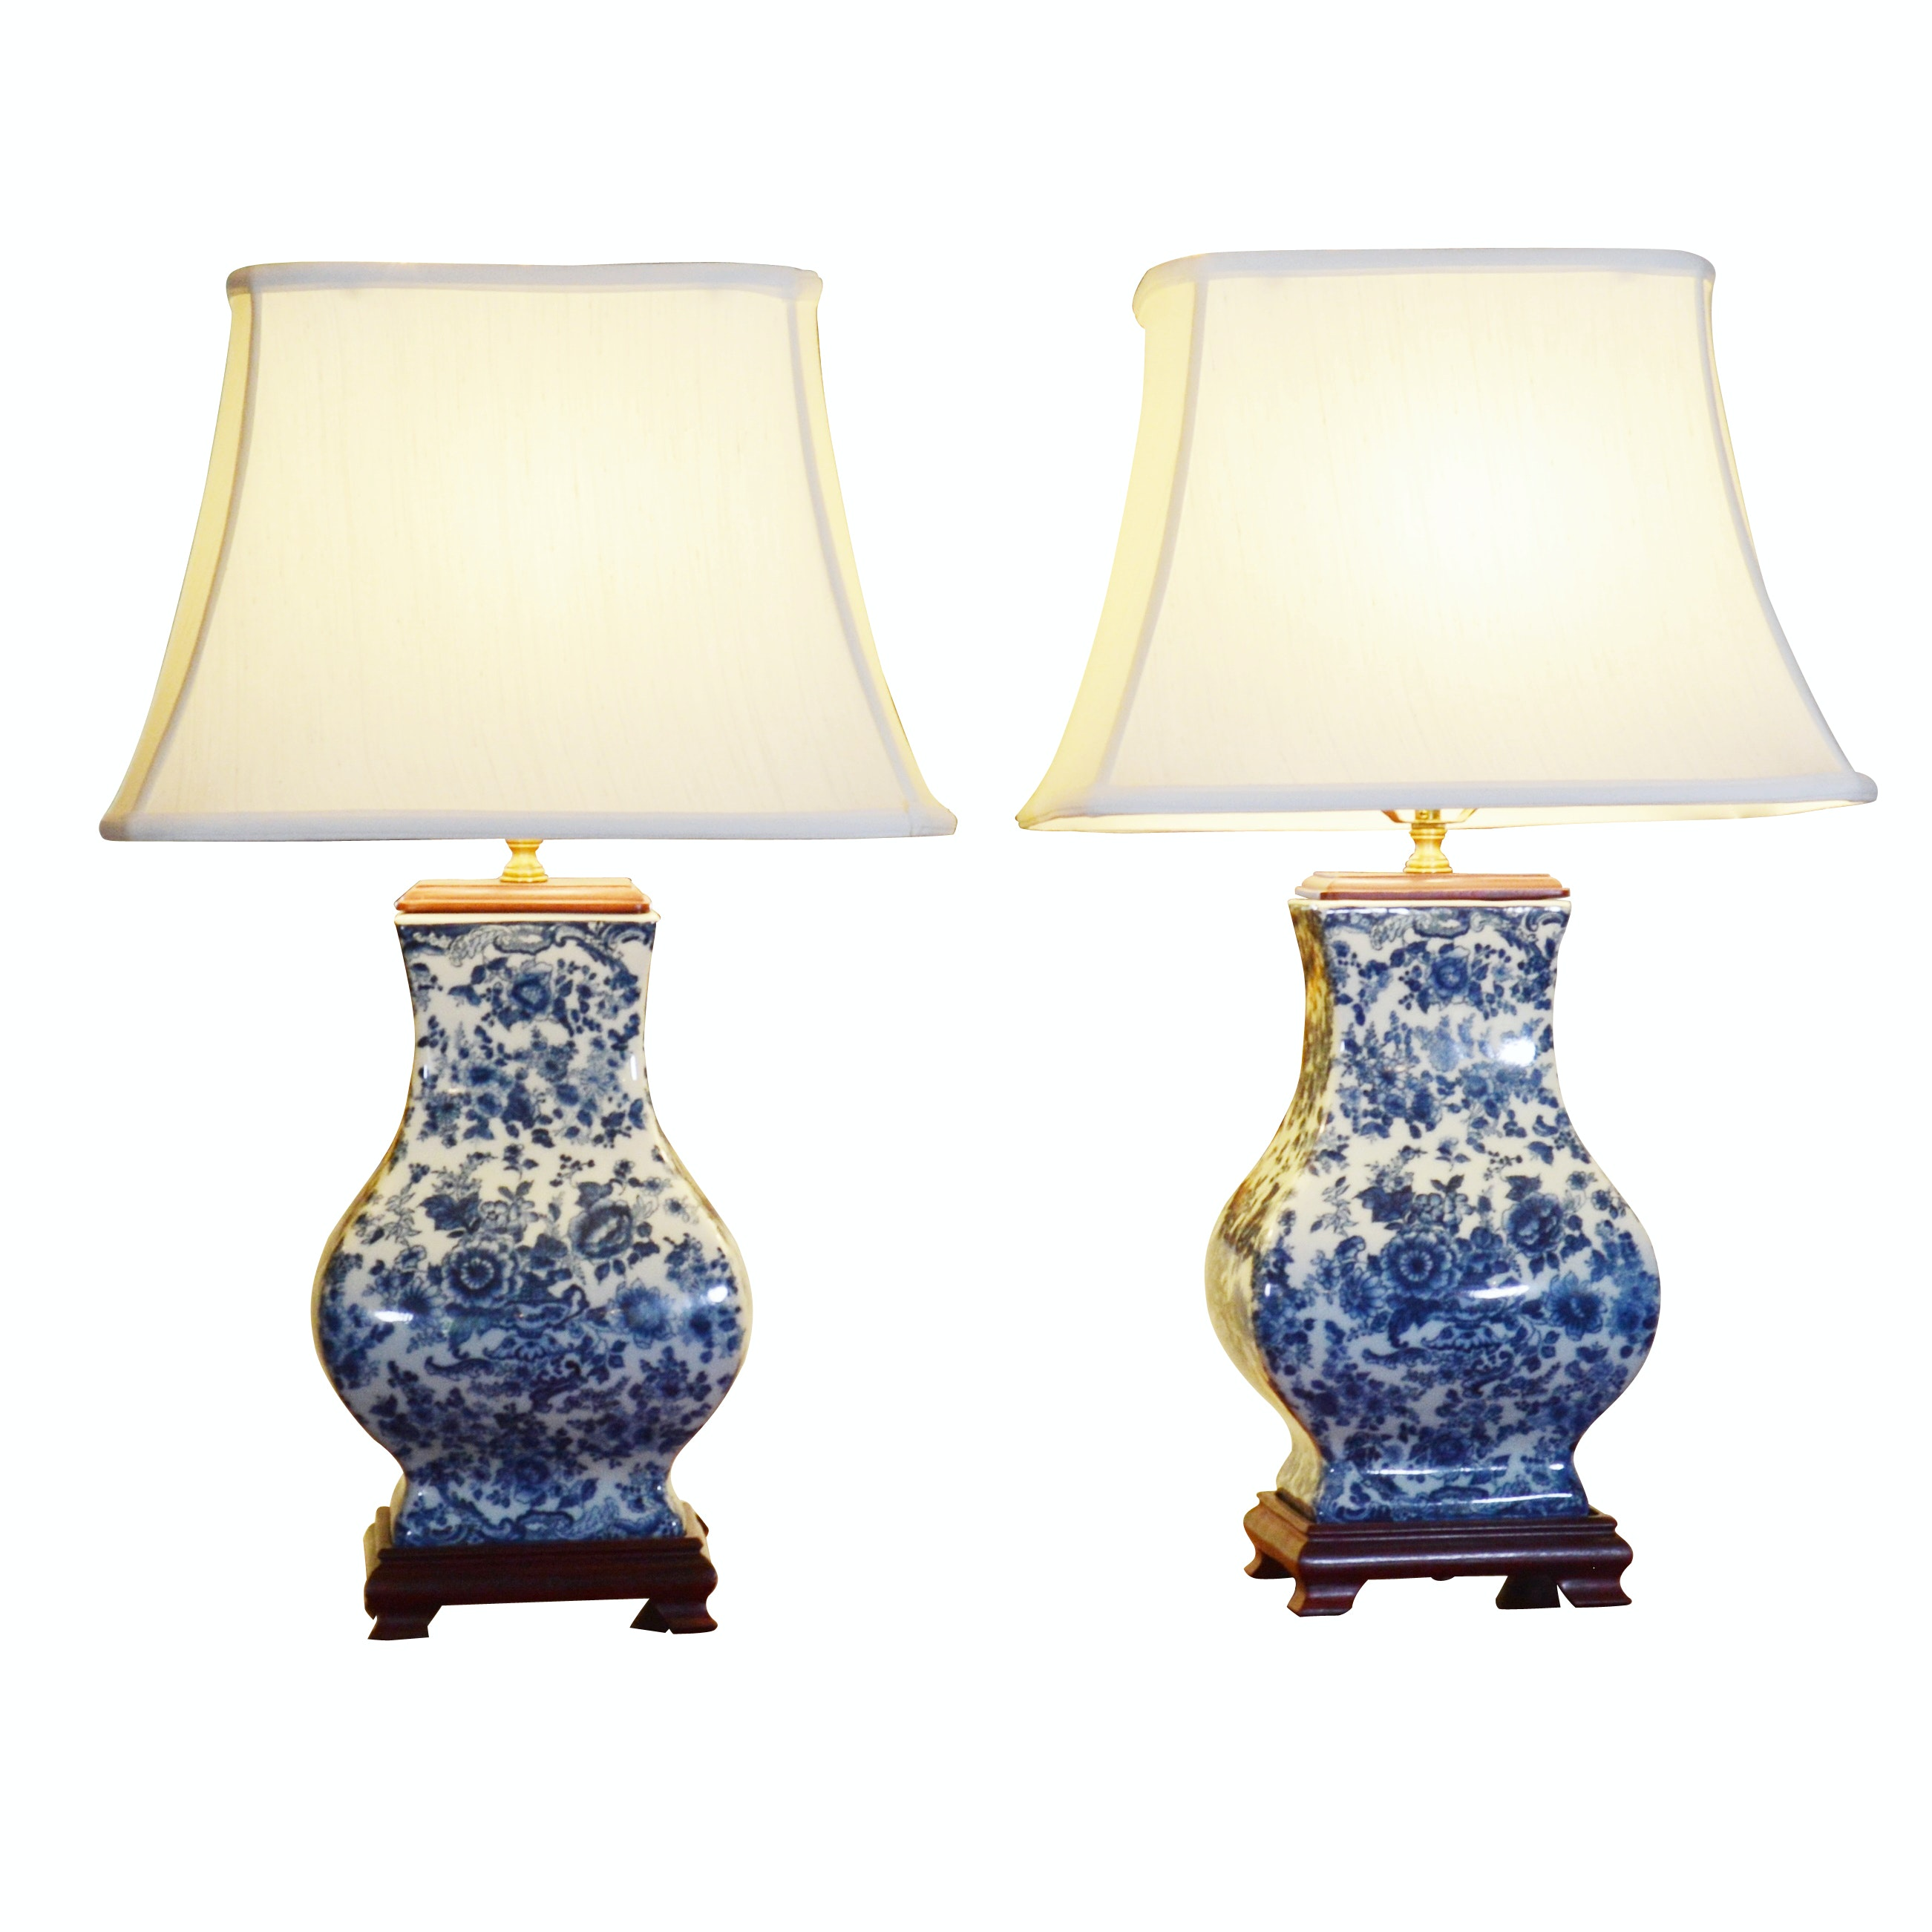 Chinese Blue and White Hu Porcelain Table Lamps